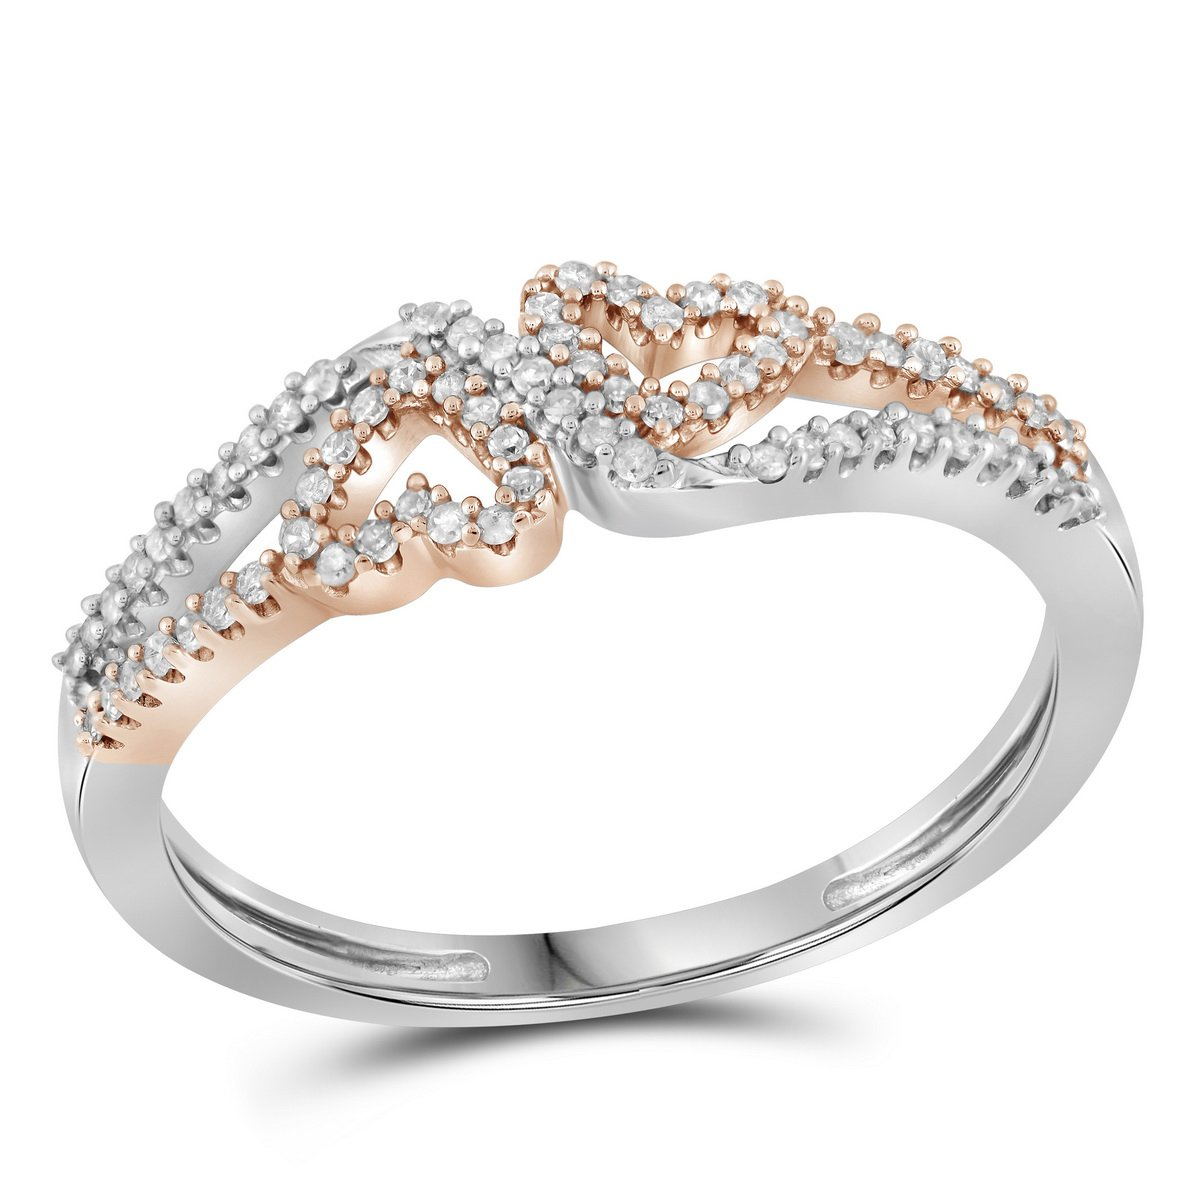 10kt White Gold Womens Round Diamond 2-tone Heart Love Ring 1/5 Cttw (I2-I3 clarity; J-K color)